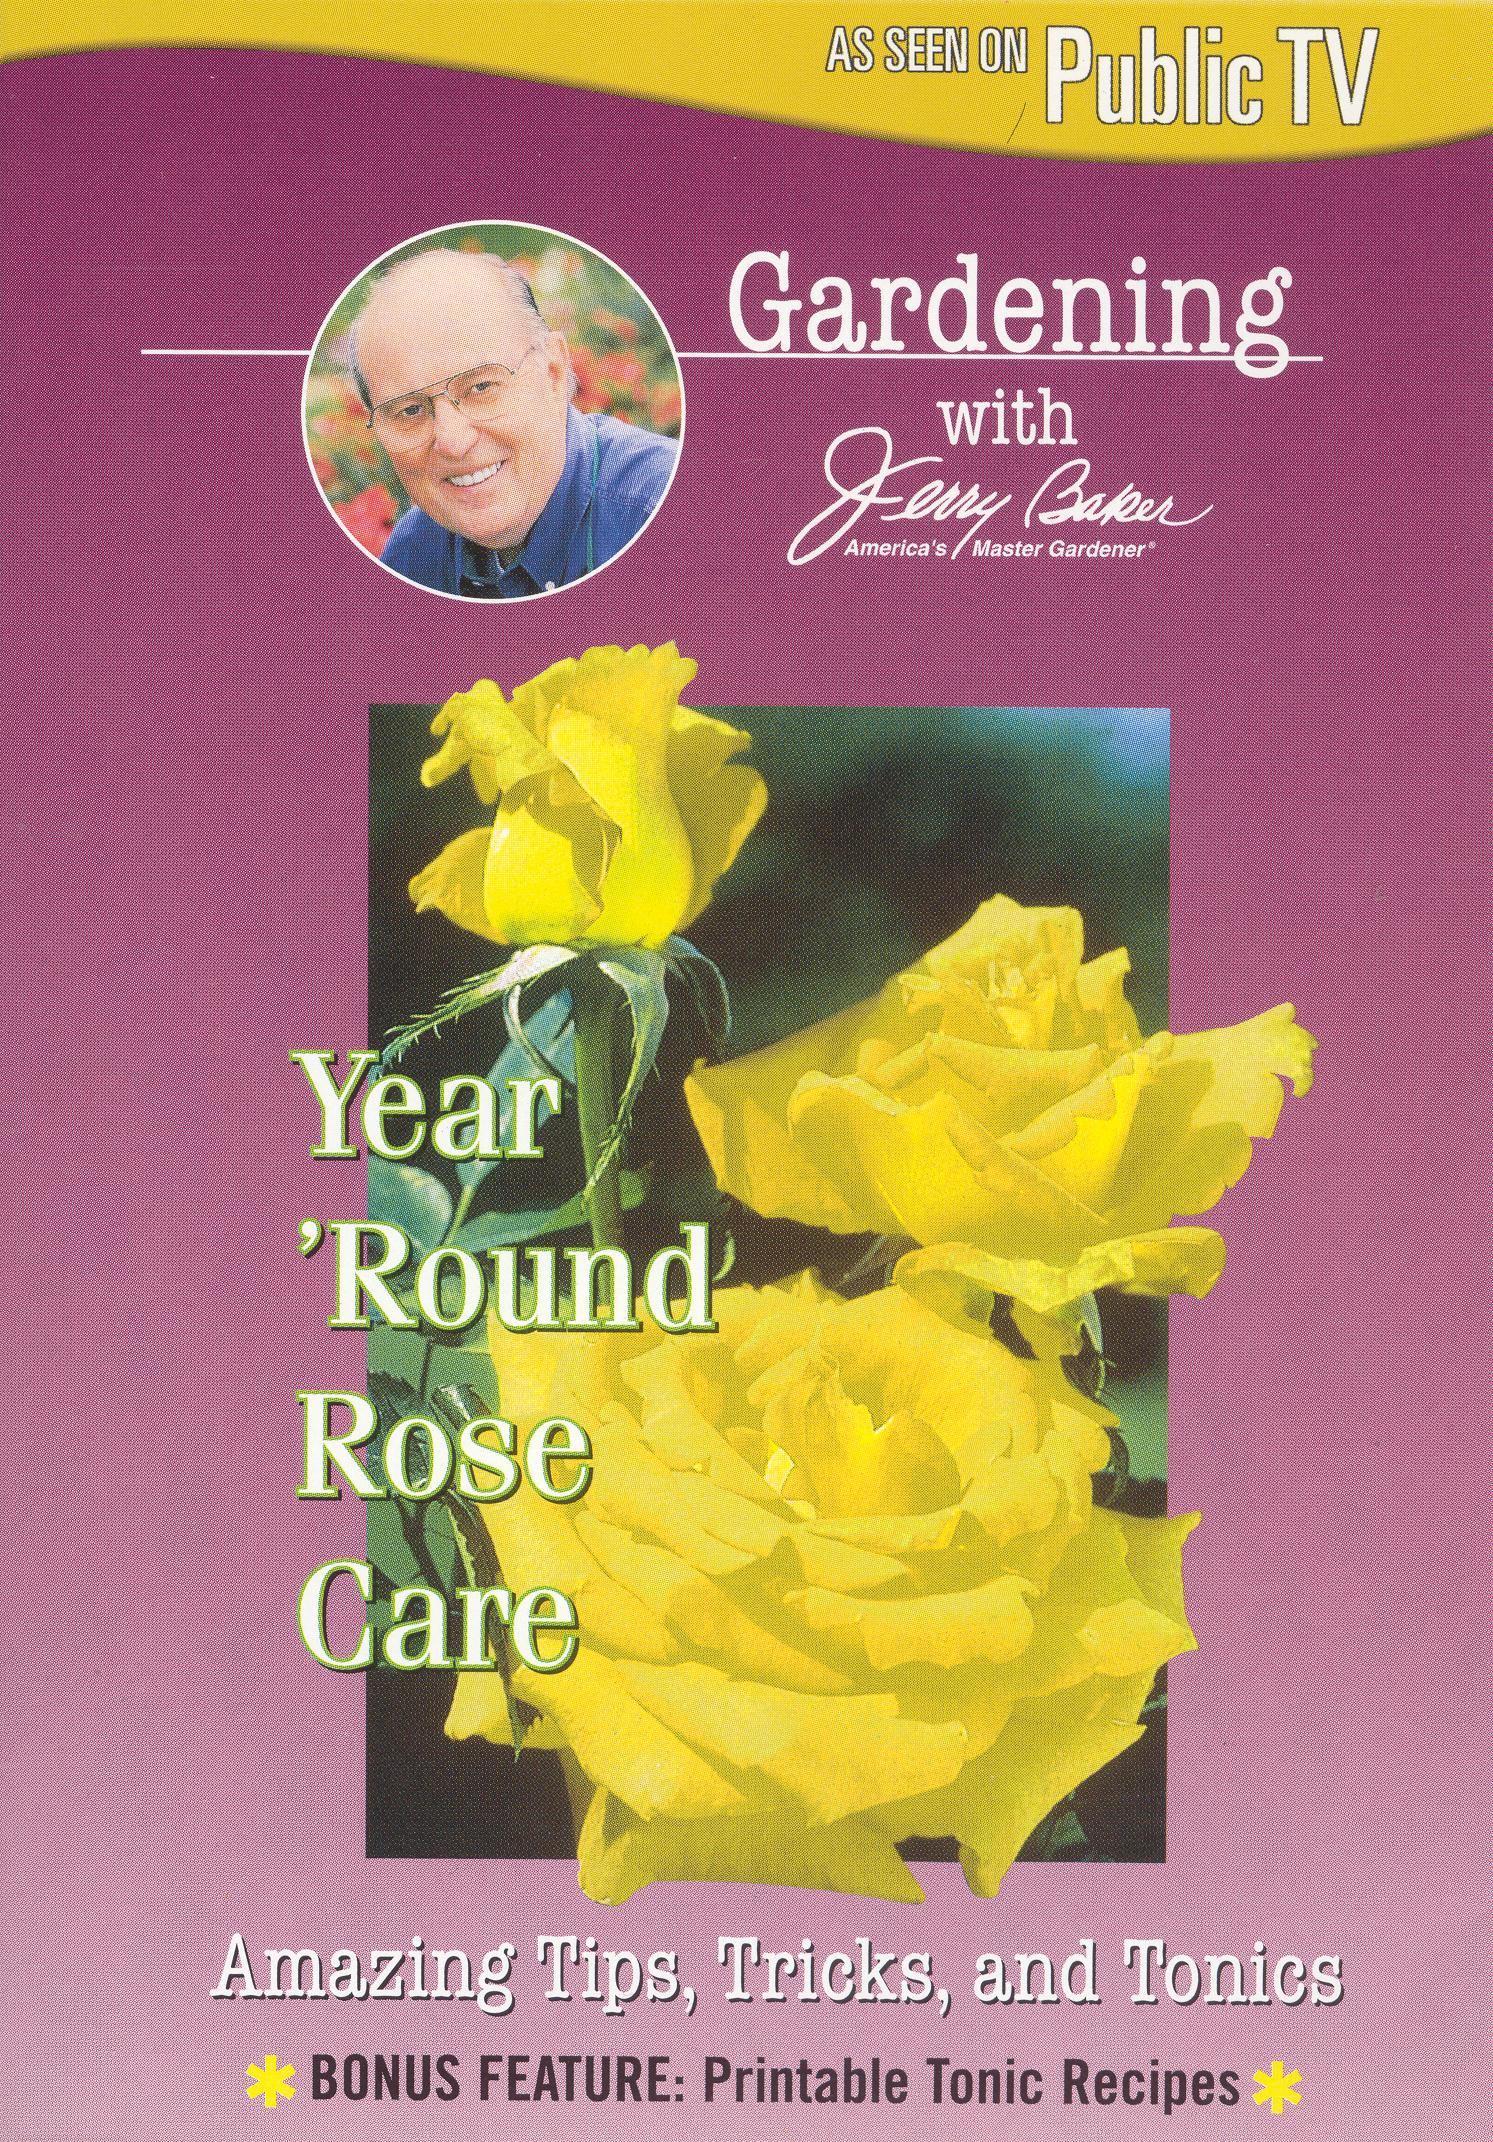 Jerry Baker: Year 'Round Rose Care